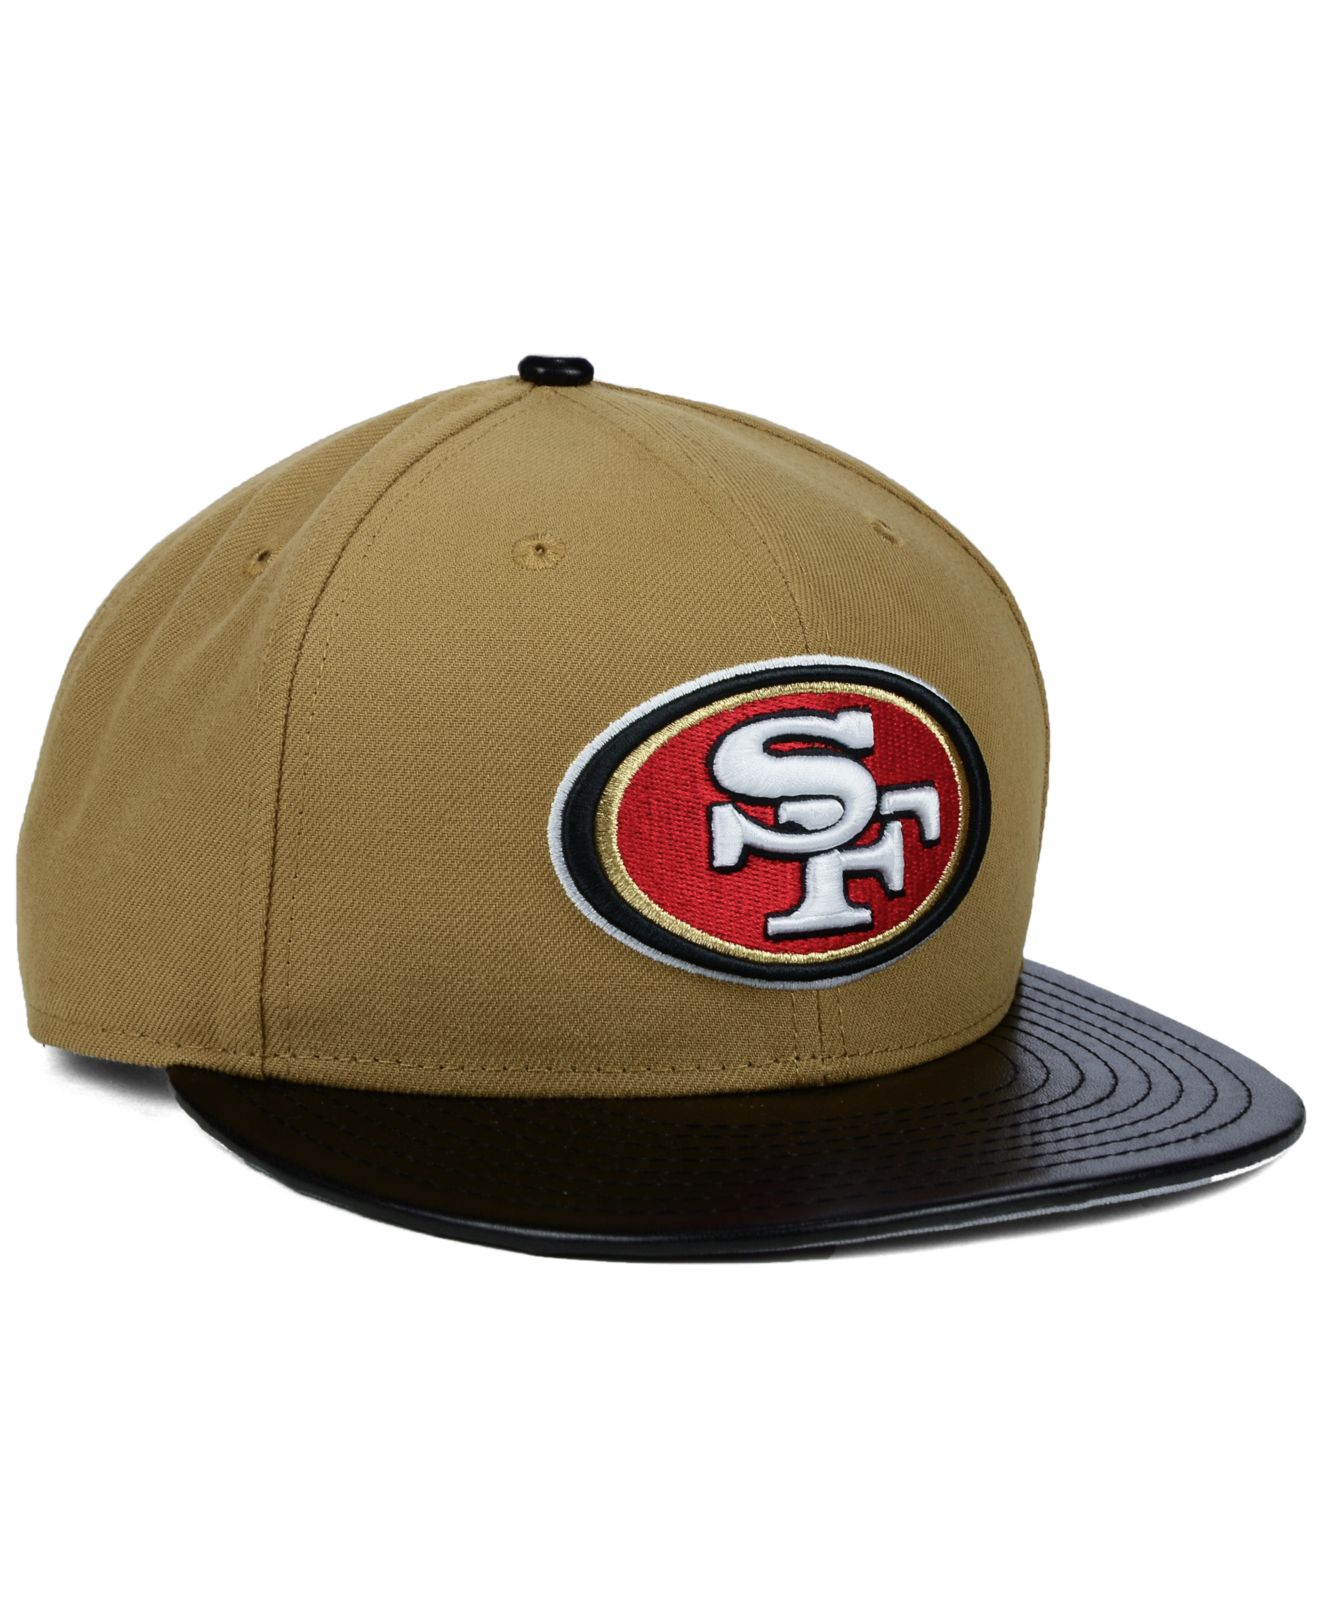 ... discount code for lyst ktz san francisco 49ers faux leather wheat  9fifty snapback 97bcb 8e38d 9a280ab95537